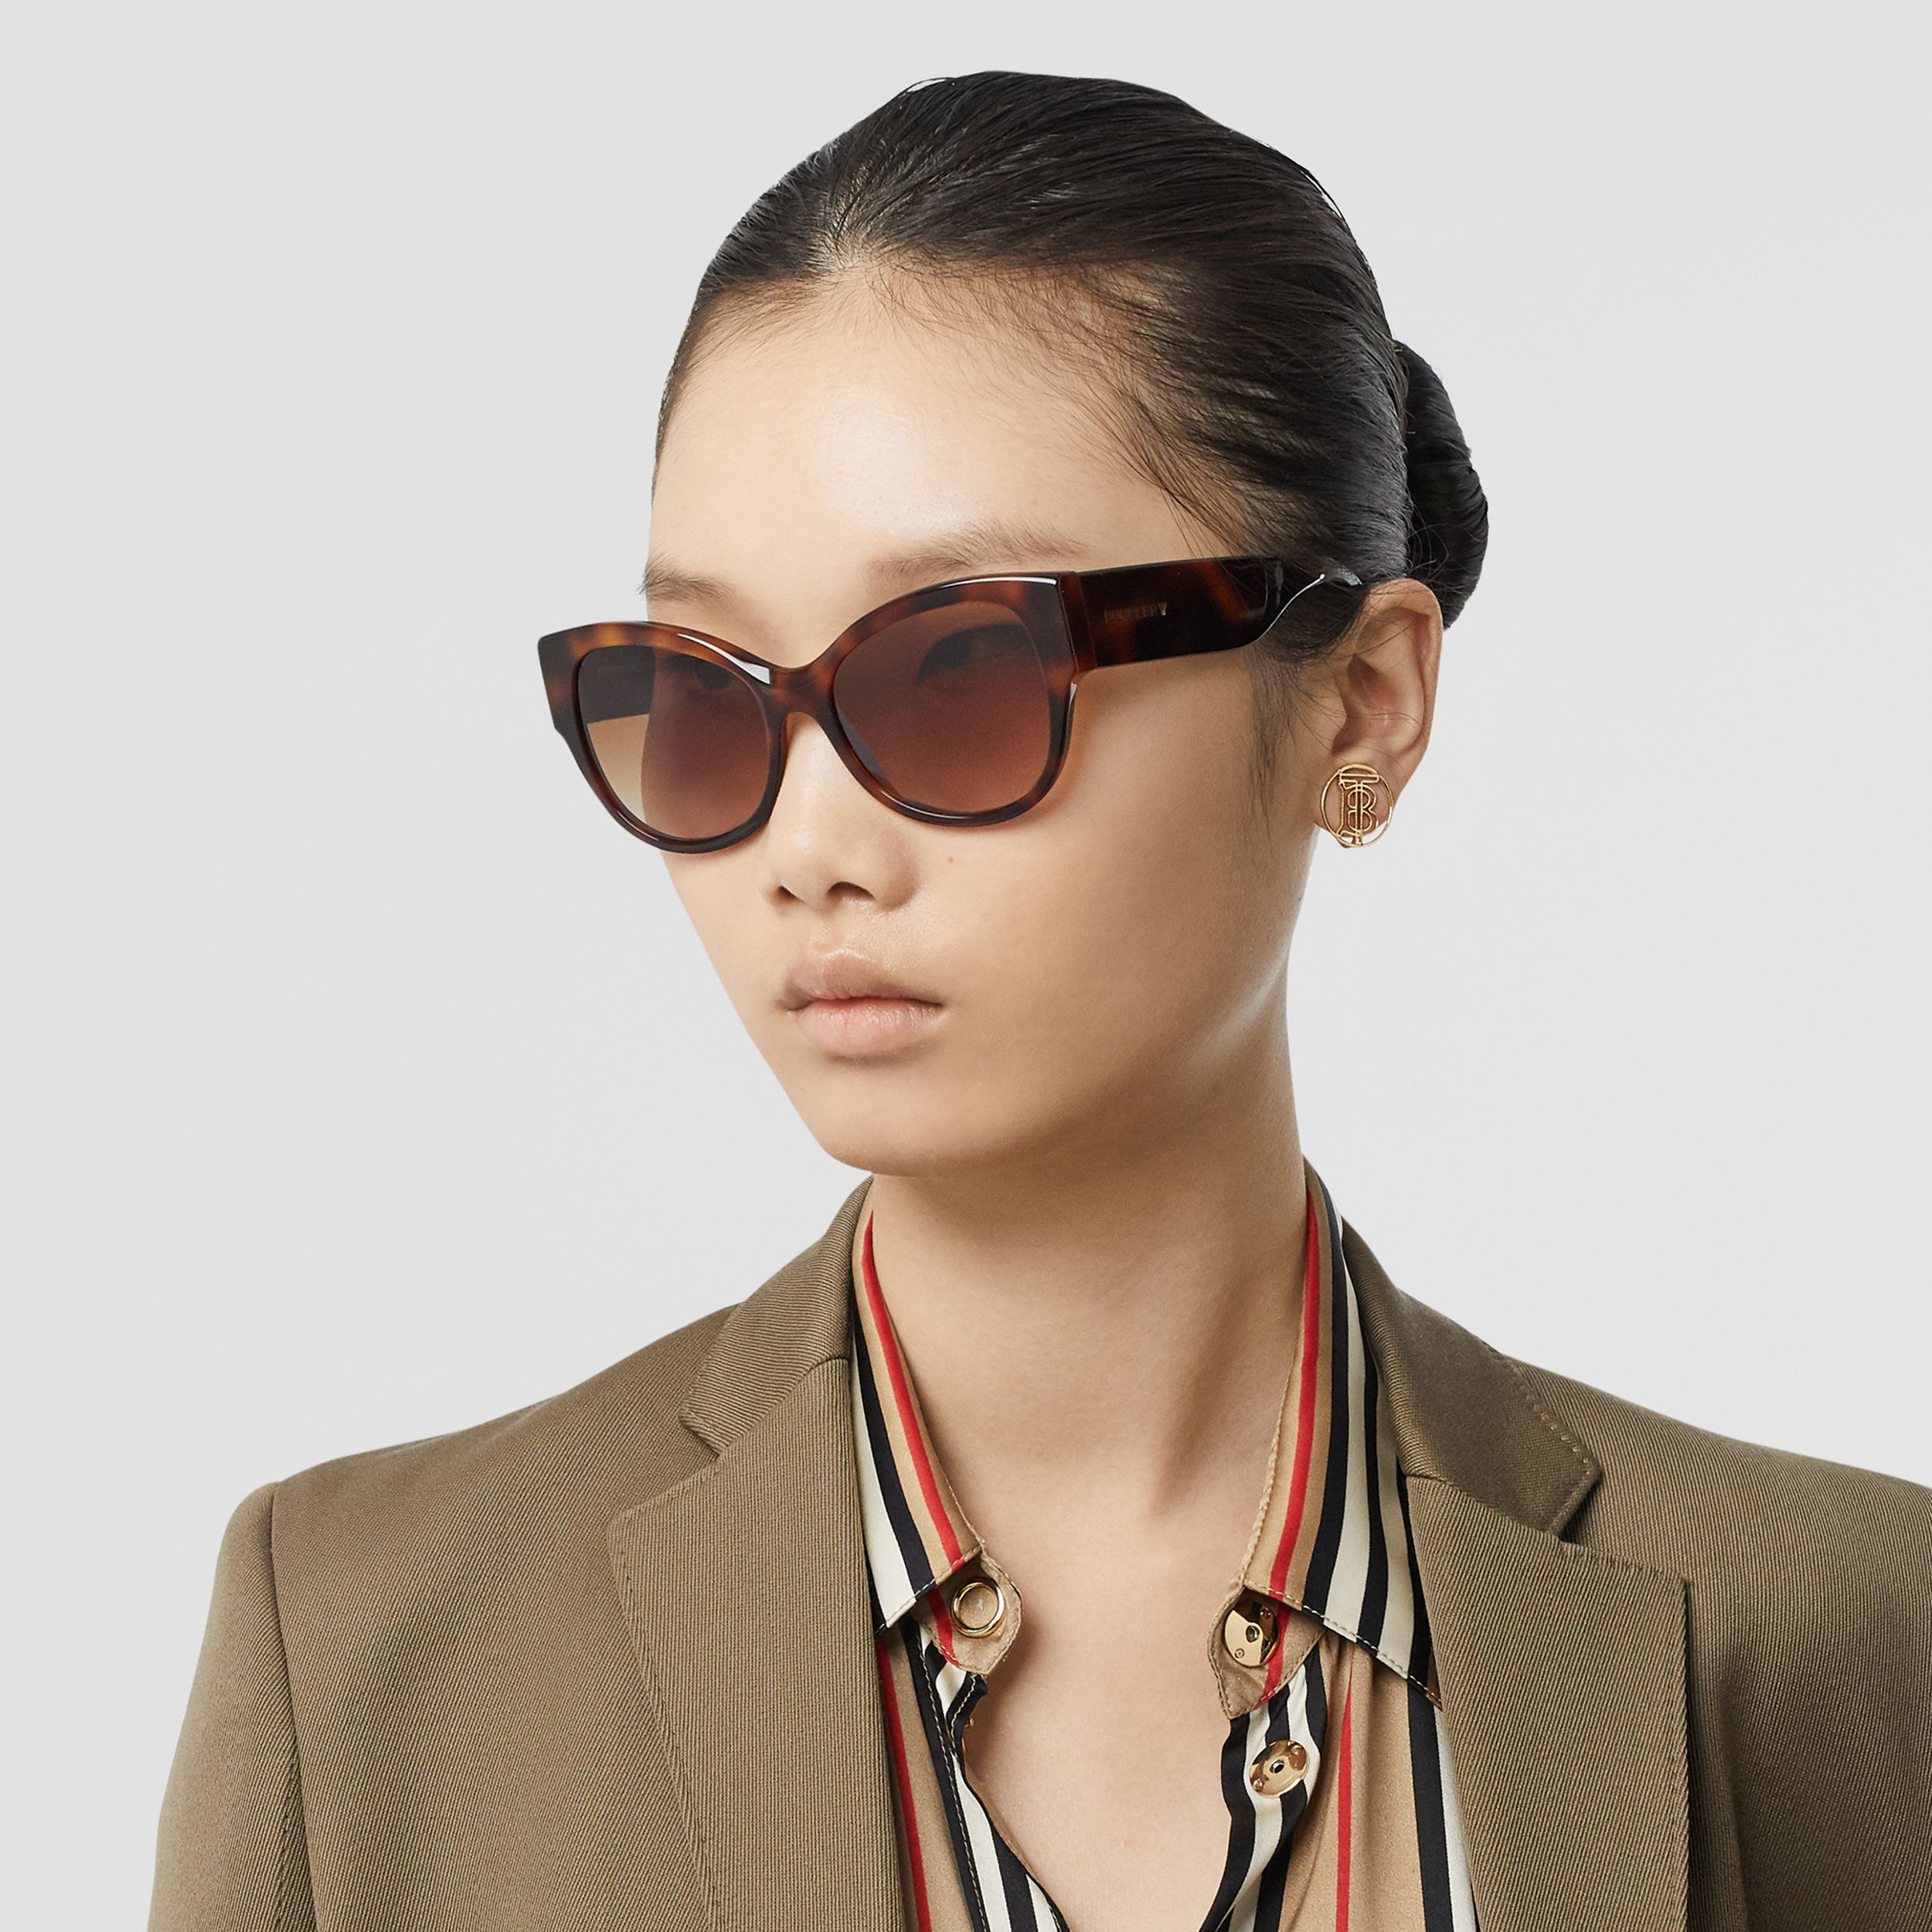 Butterfly Frame Sunglasses in Amber Tortoiseshell - Women | Burberry - 3